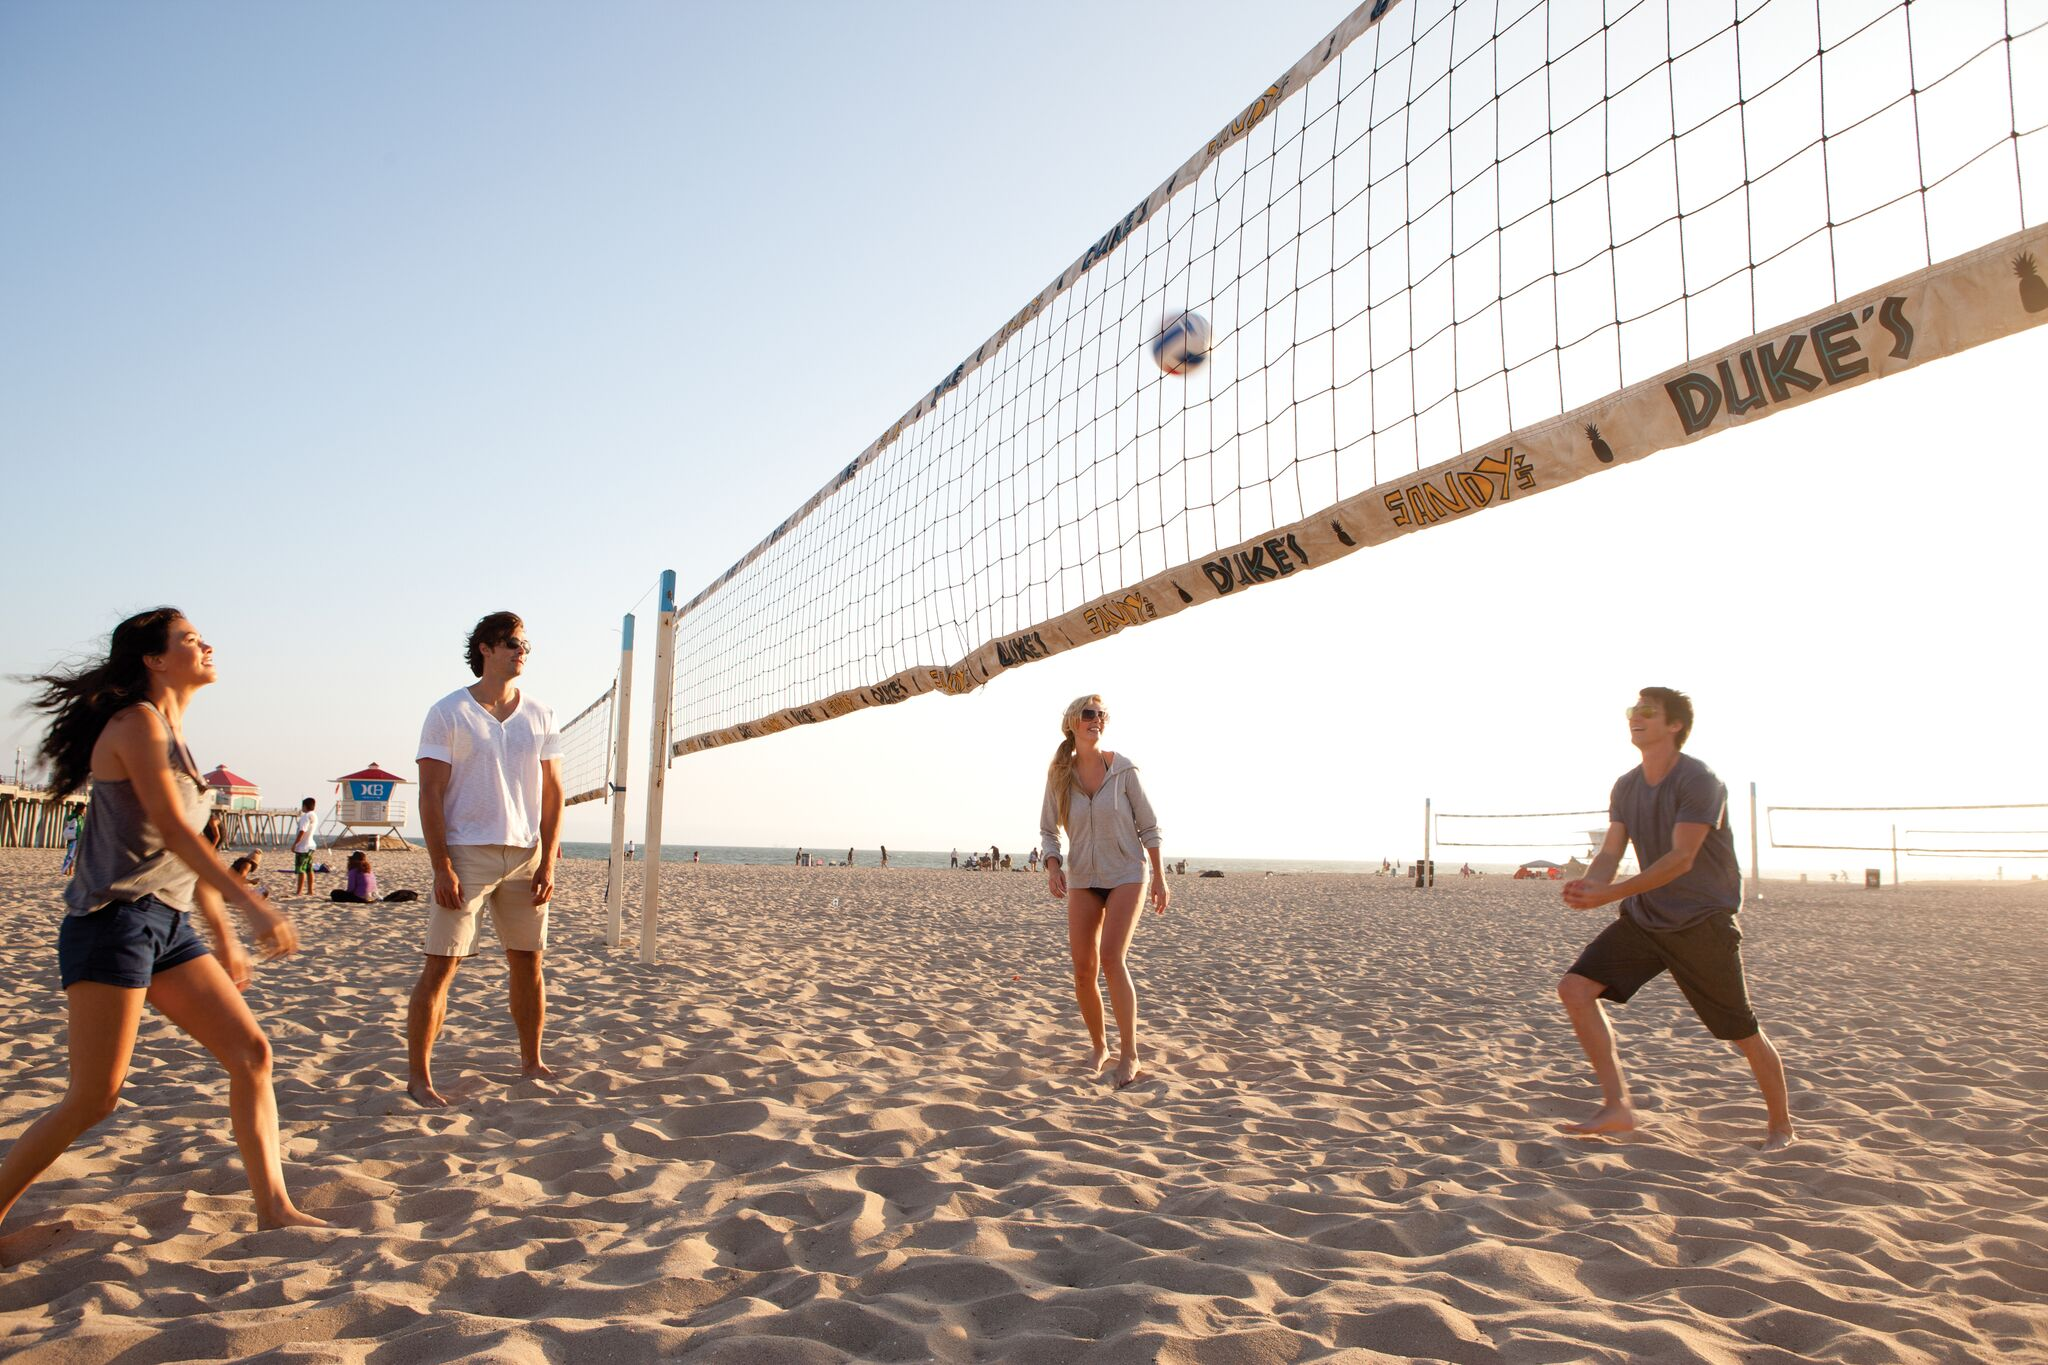 Why do women beach volleyball players wear bikinis while men wear shorts and tank tops?